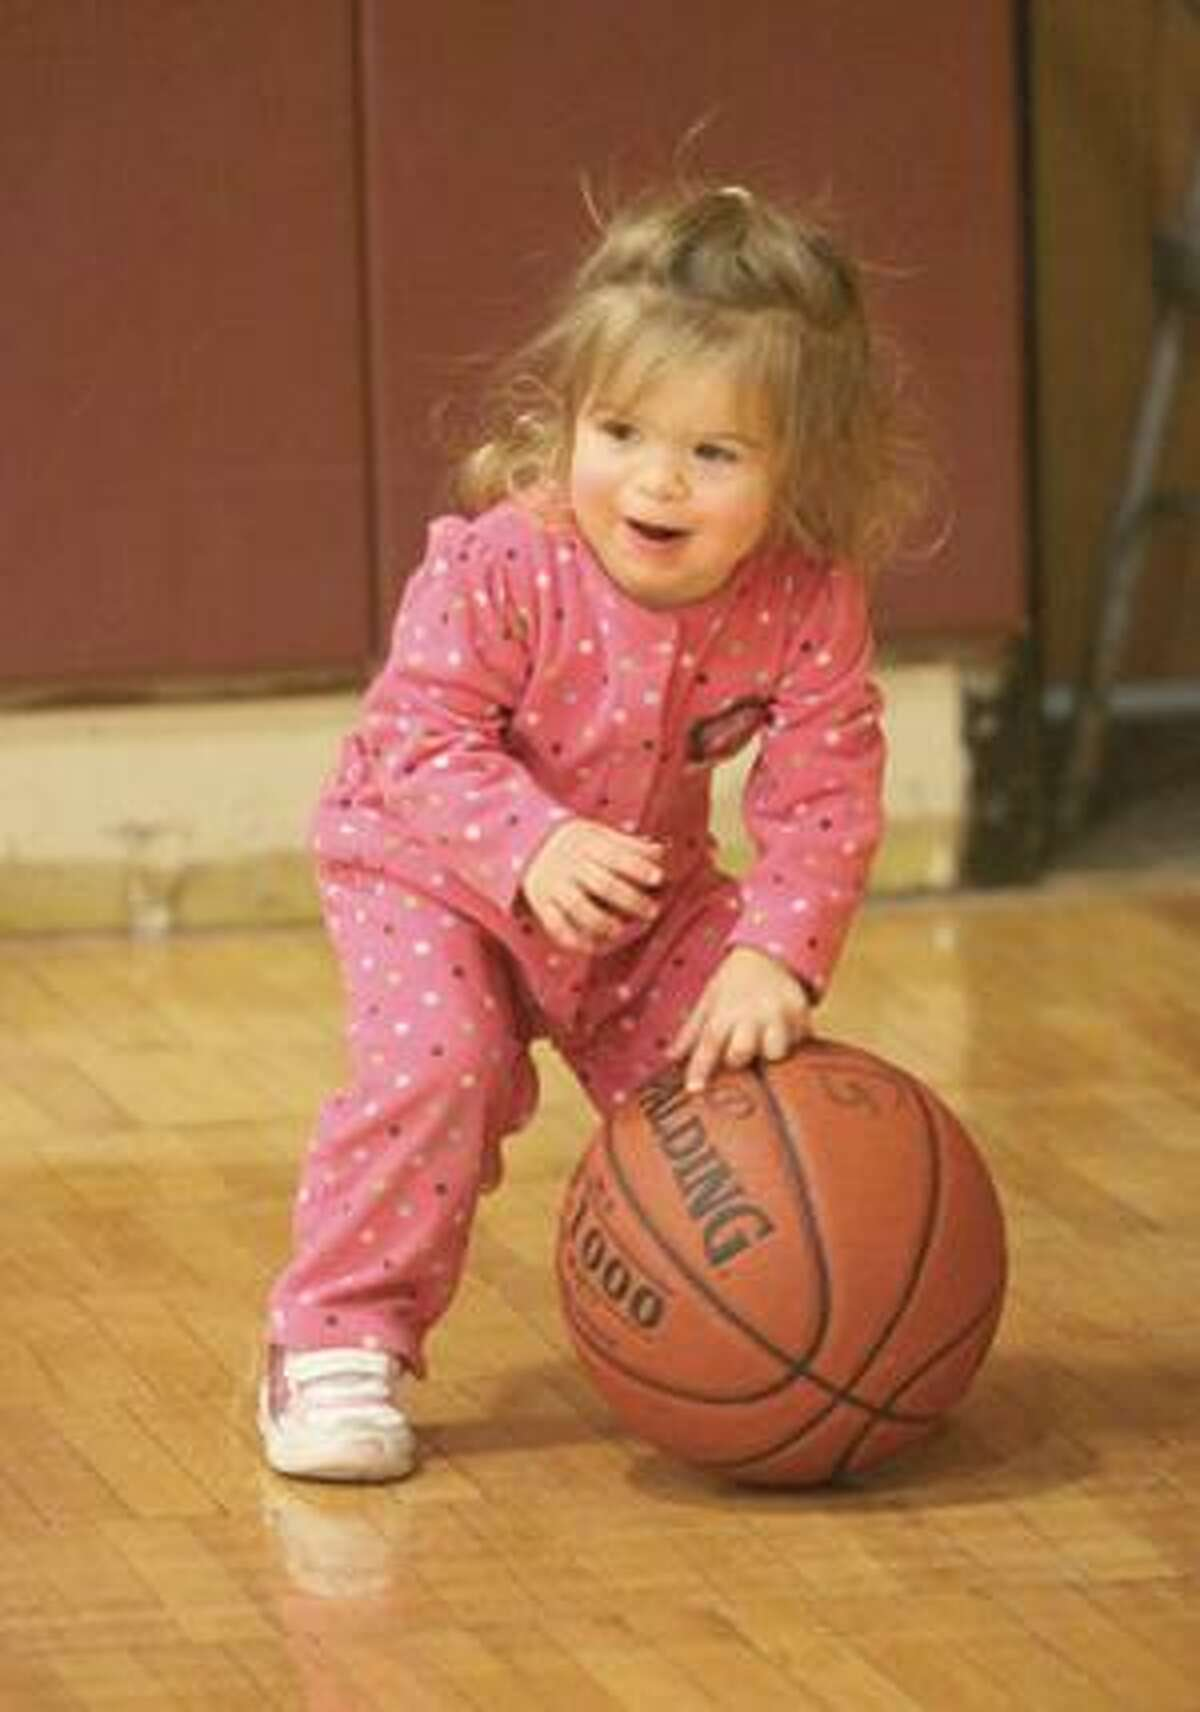 Avalee Fritch, nearly two, plays with a basketball in the Torrington High School gym Friday evening during a girls game. Purchase a glossy print of this photo and more at www.registercitizen.com